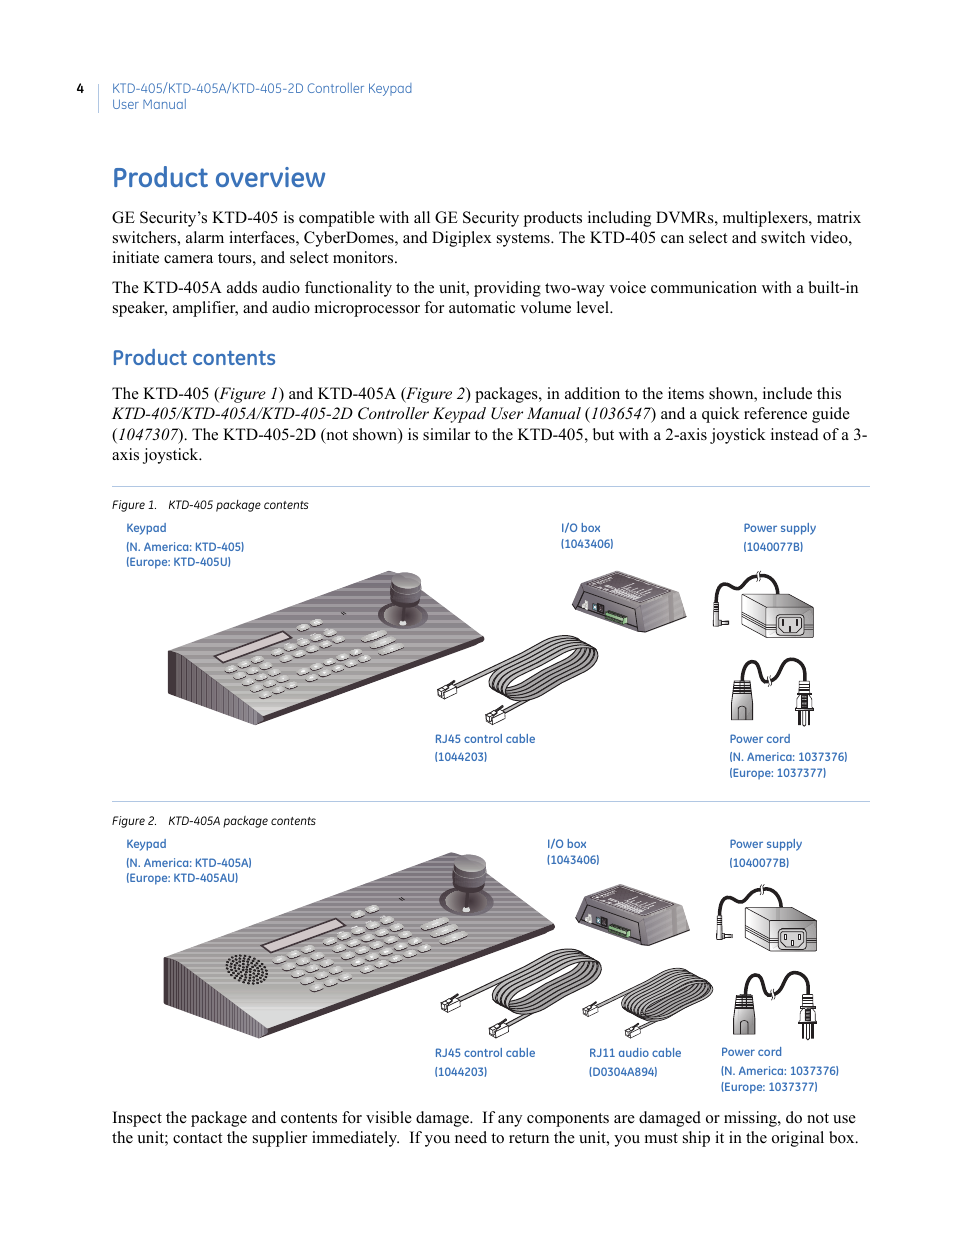 Product overview, Product contents, Figure 1. ktd-405 package contents    Interlogix KTD-405 Series User Manual User Manual   Page 8 / 76